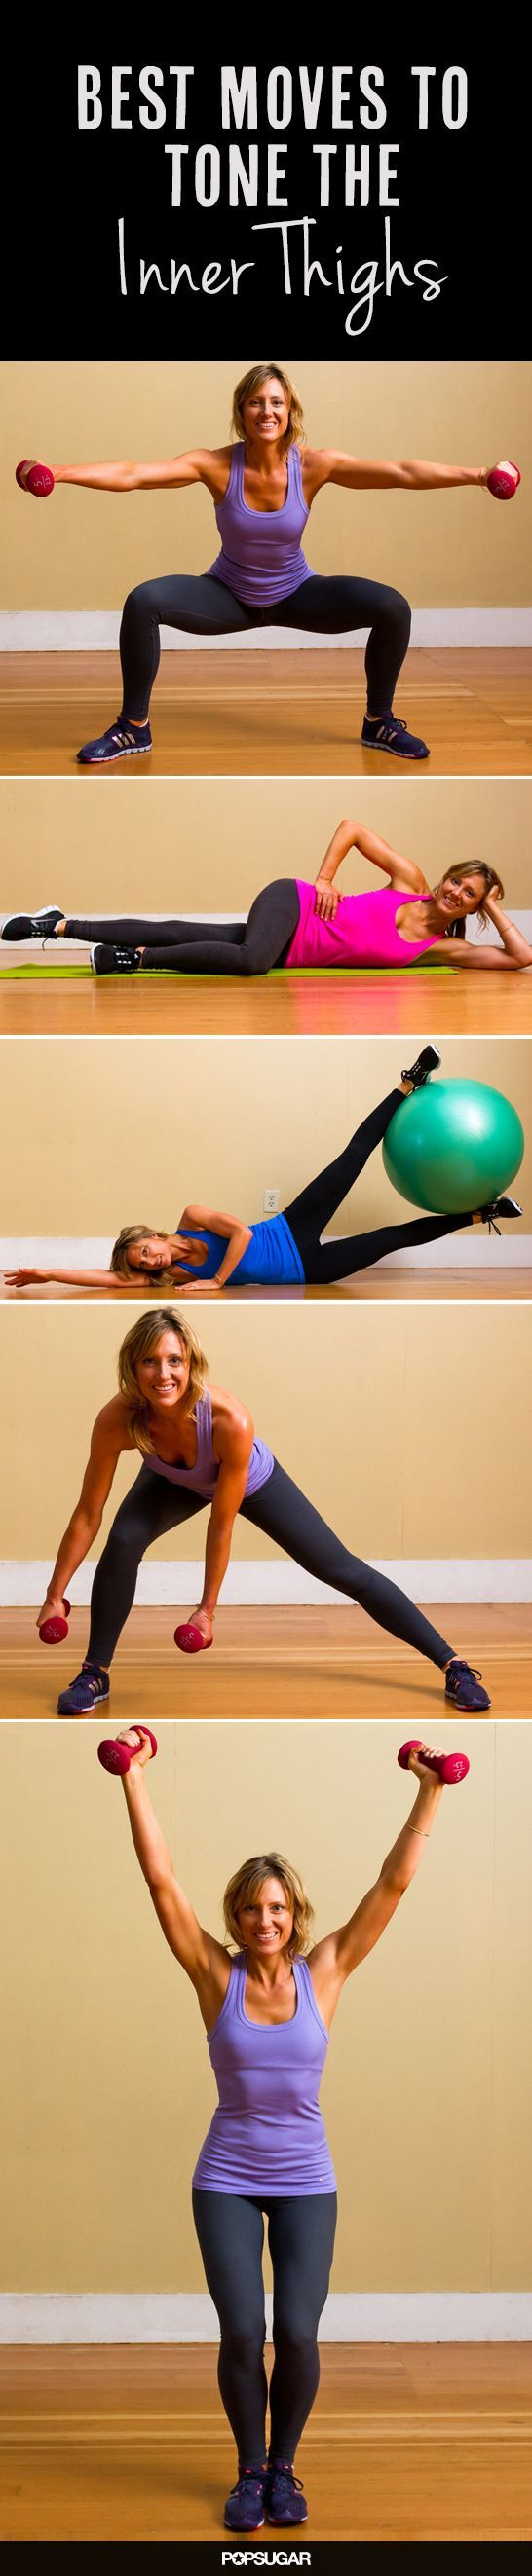 16 Moves to Terrifically Toned Inner Thighs #workout #fitness #tone